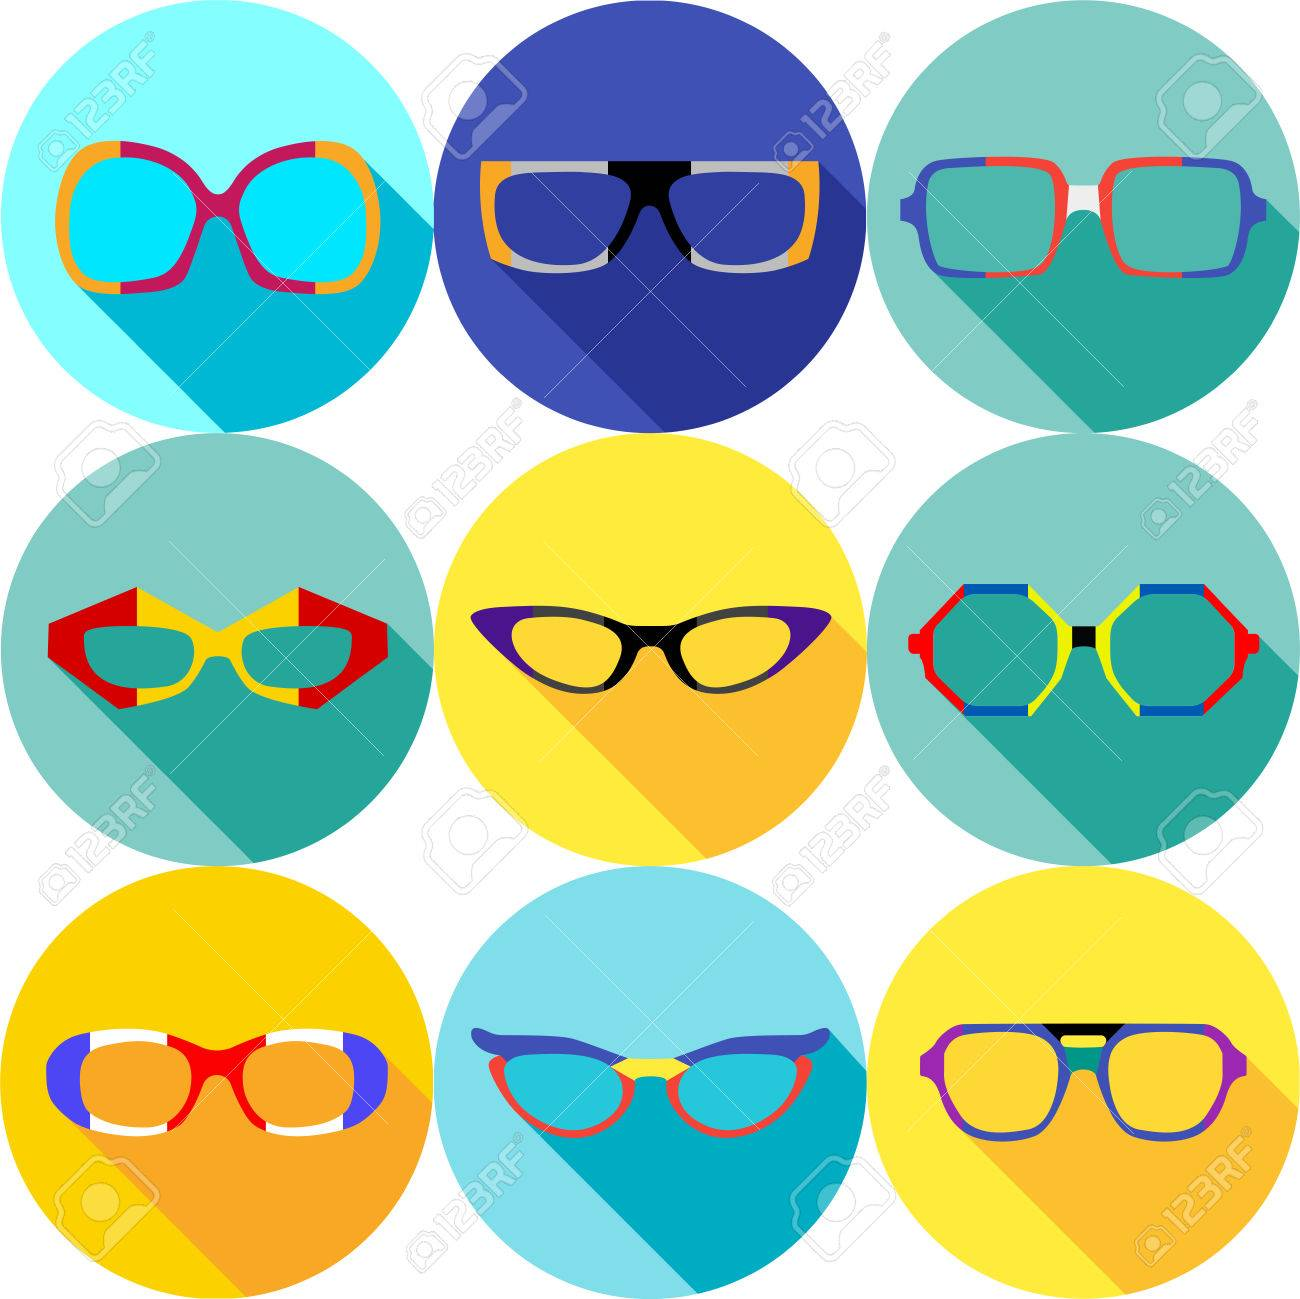 cb79436d1a4 ... hipster eyeglasses frames in different character colors. Super hero  mask glasses collection. Flat style avatar icon. Colorful vector  illustration eps 8